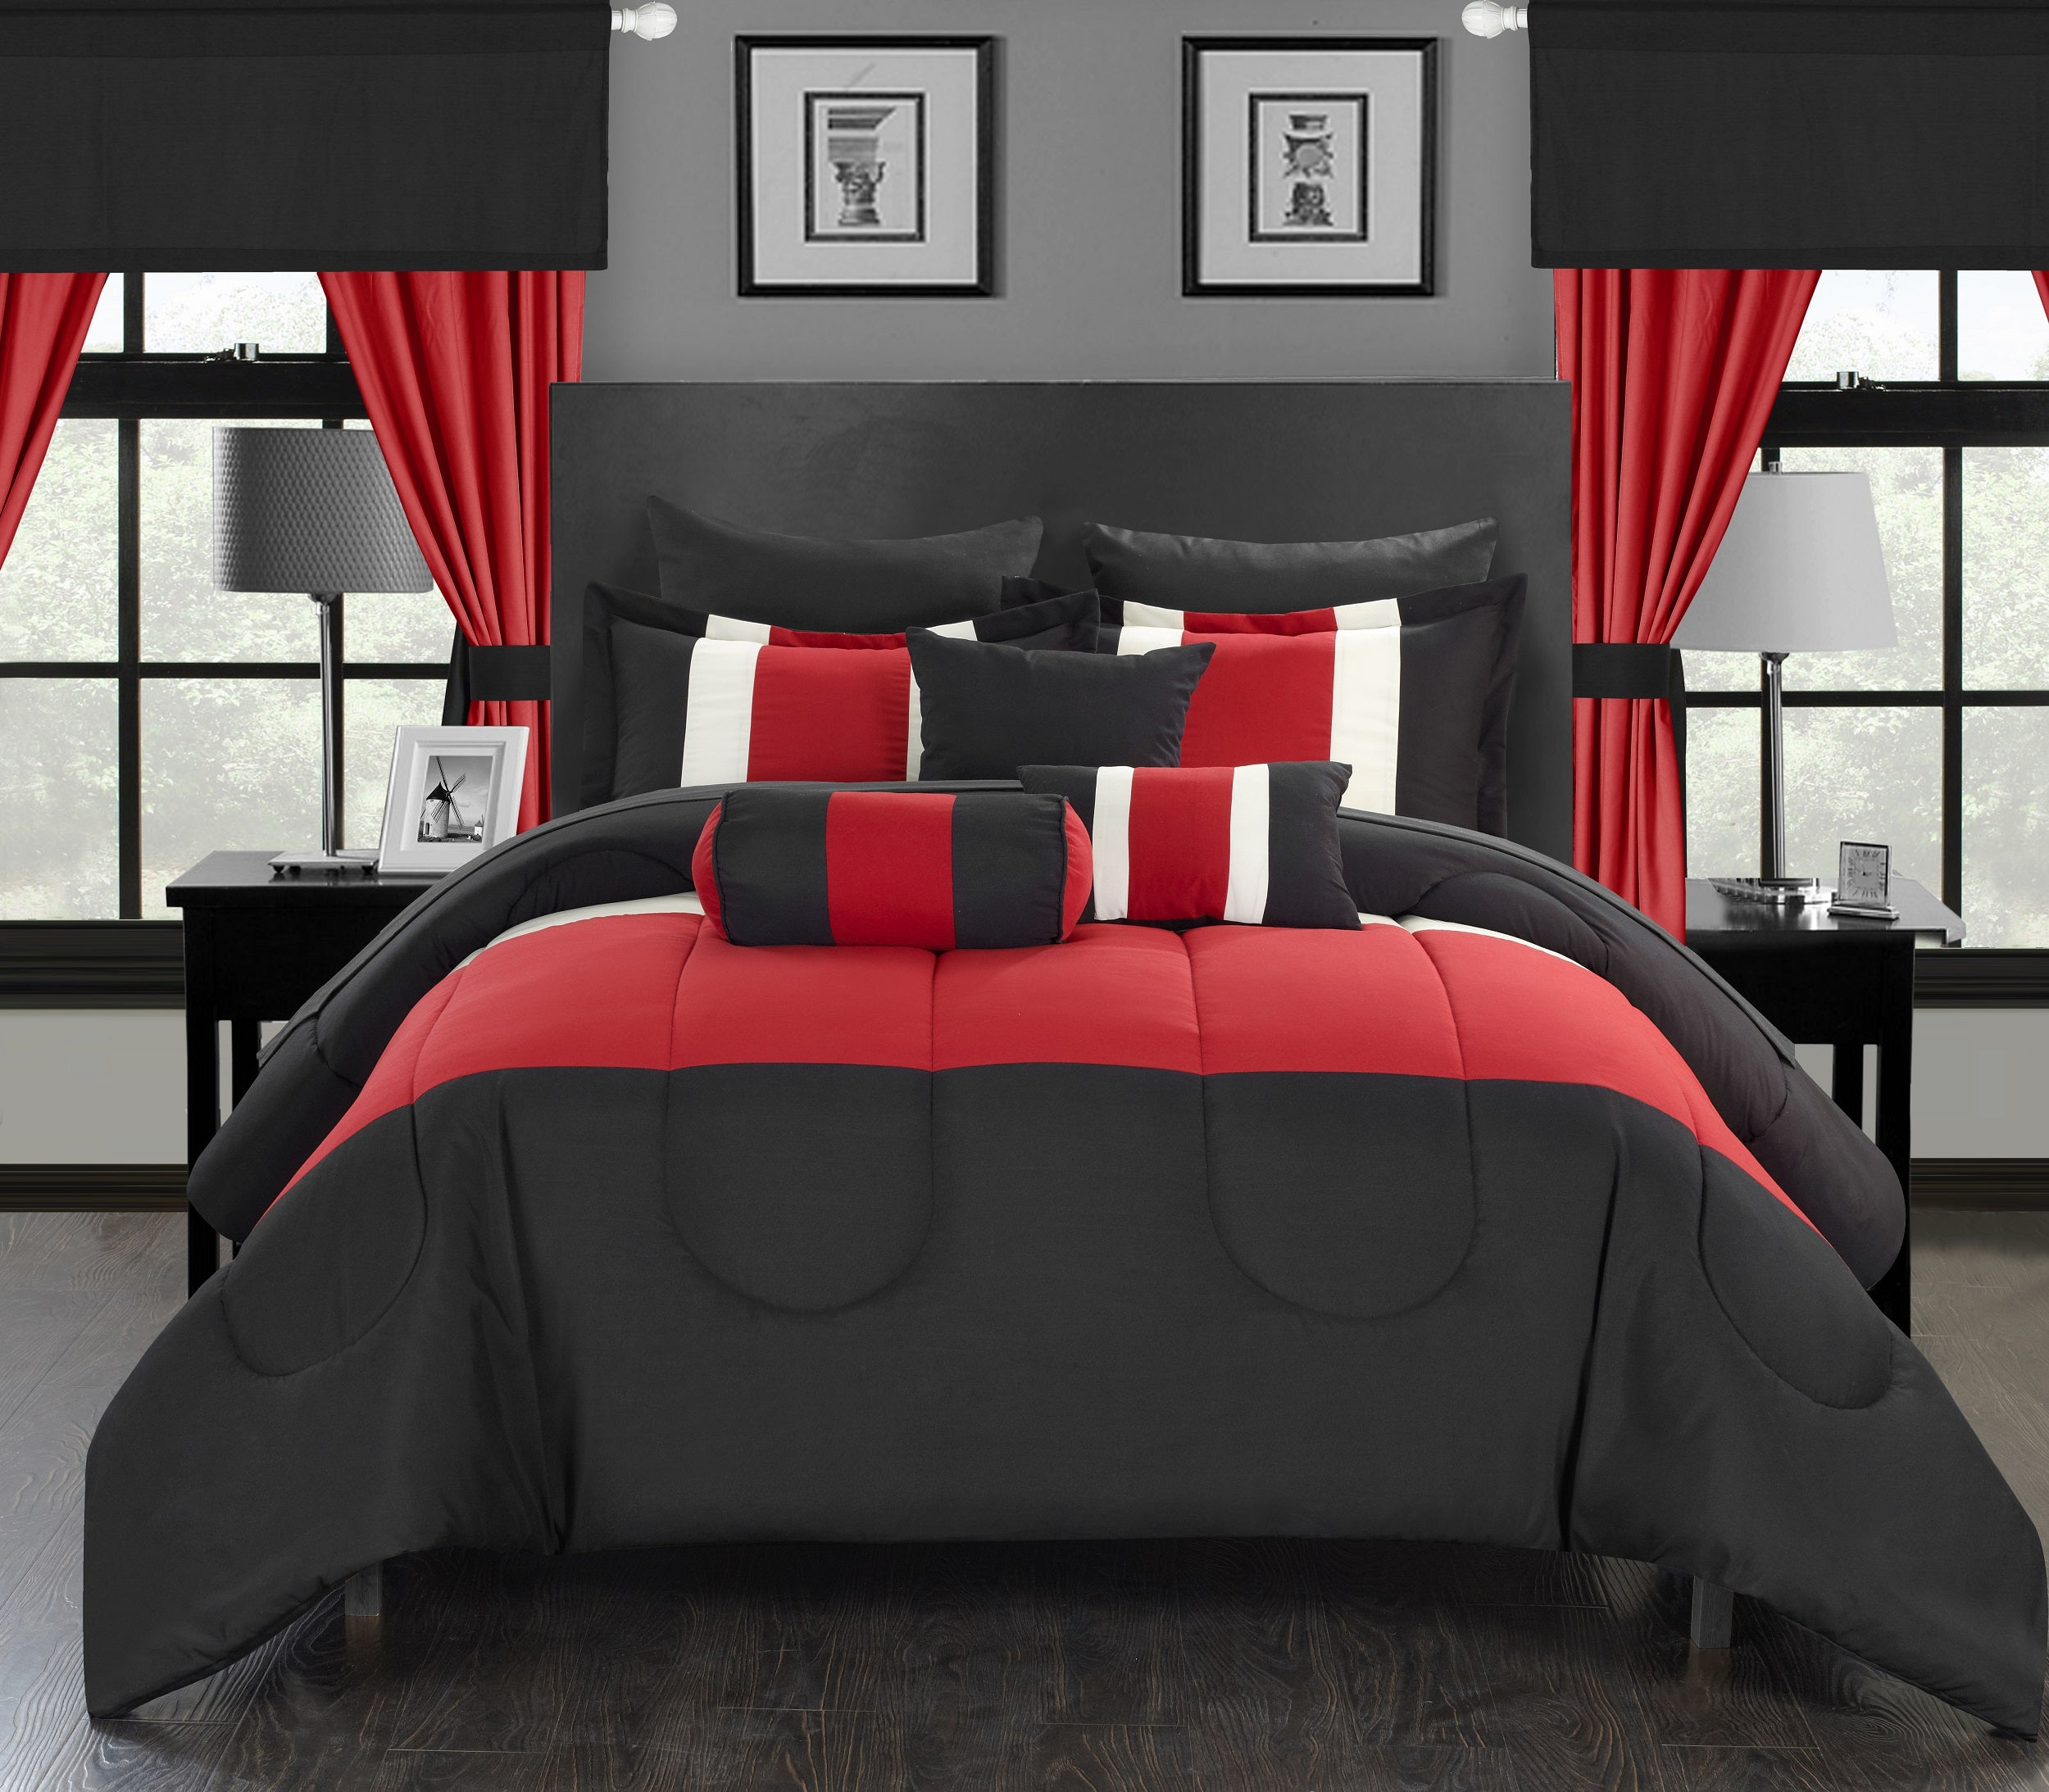 Catherine Flocking Black And Red Bed For Sale